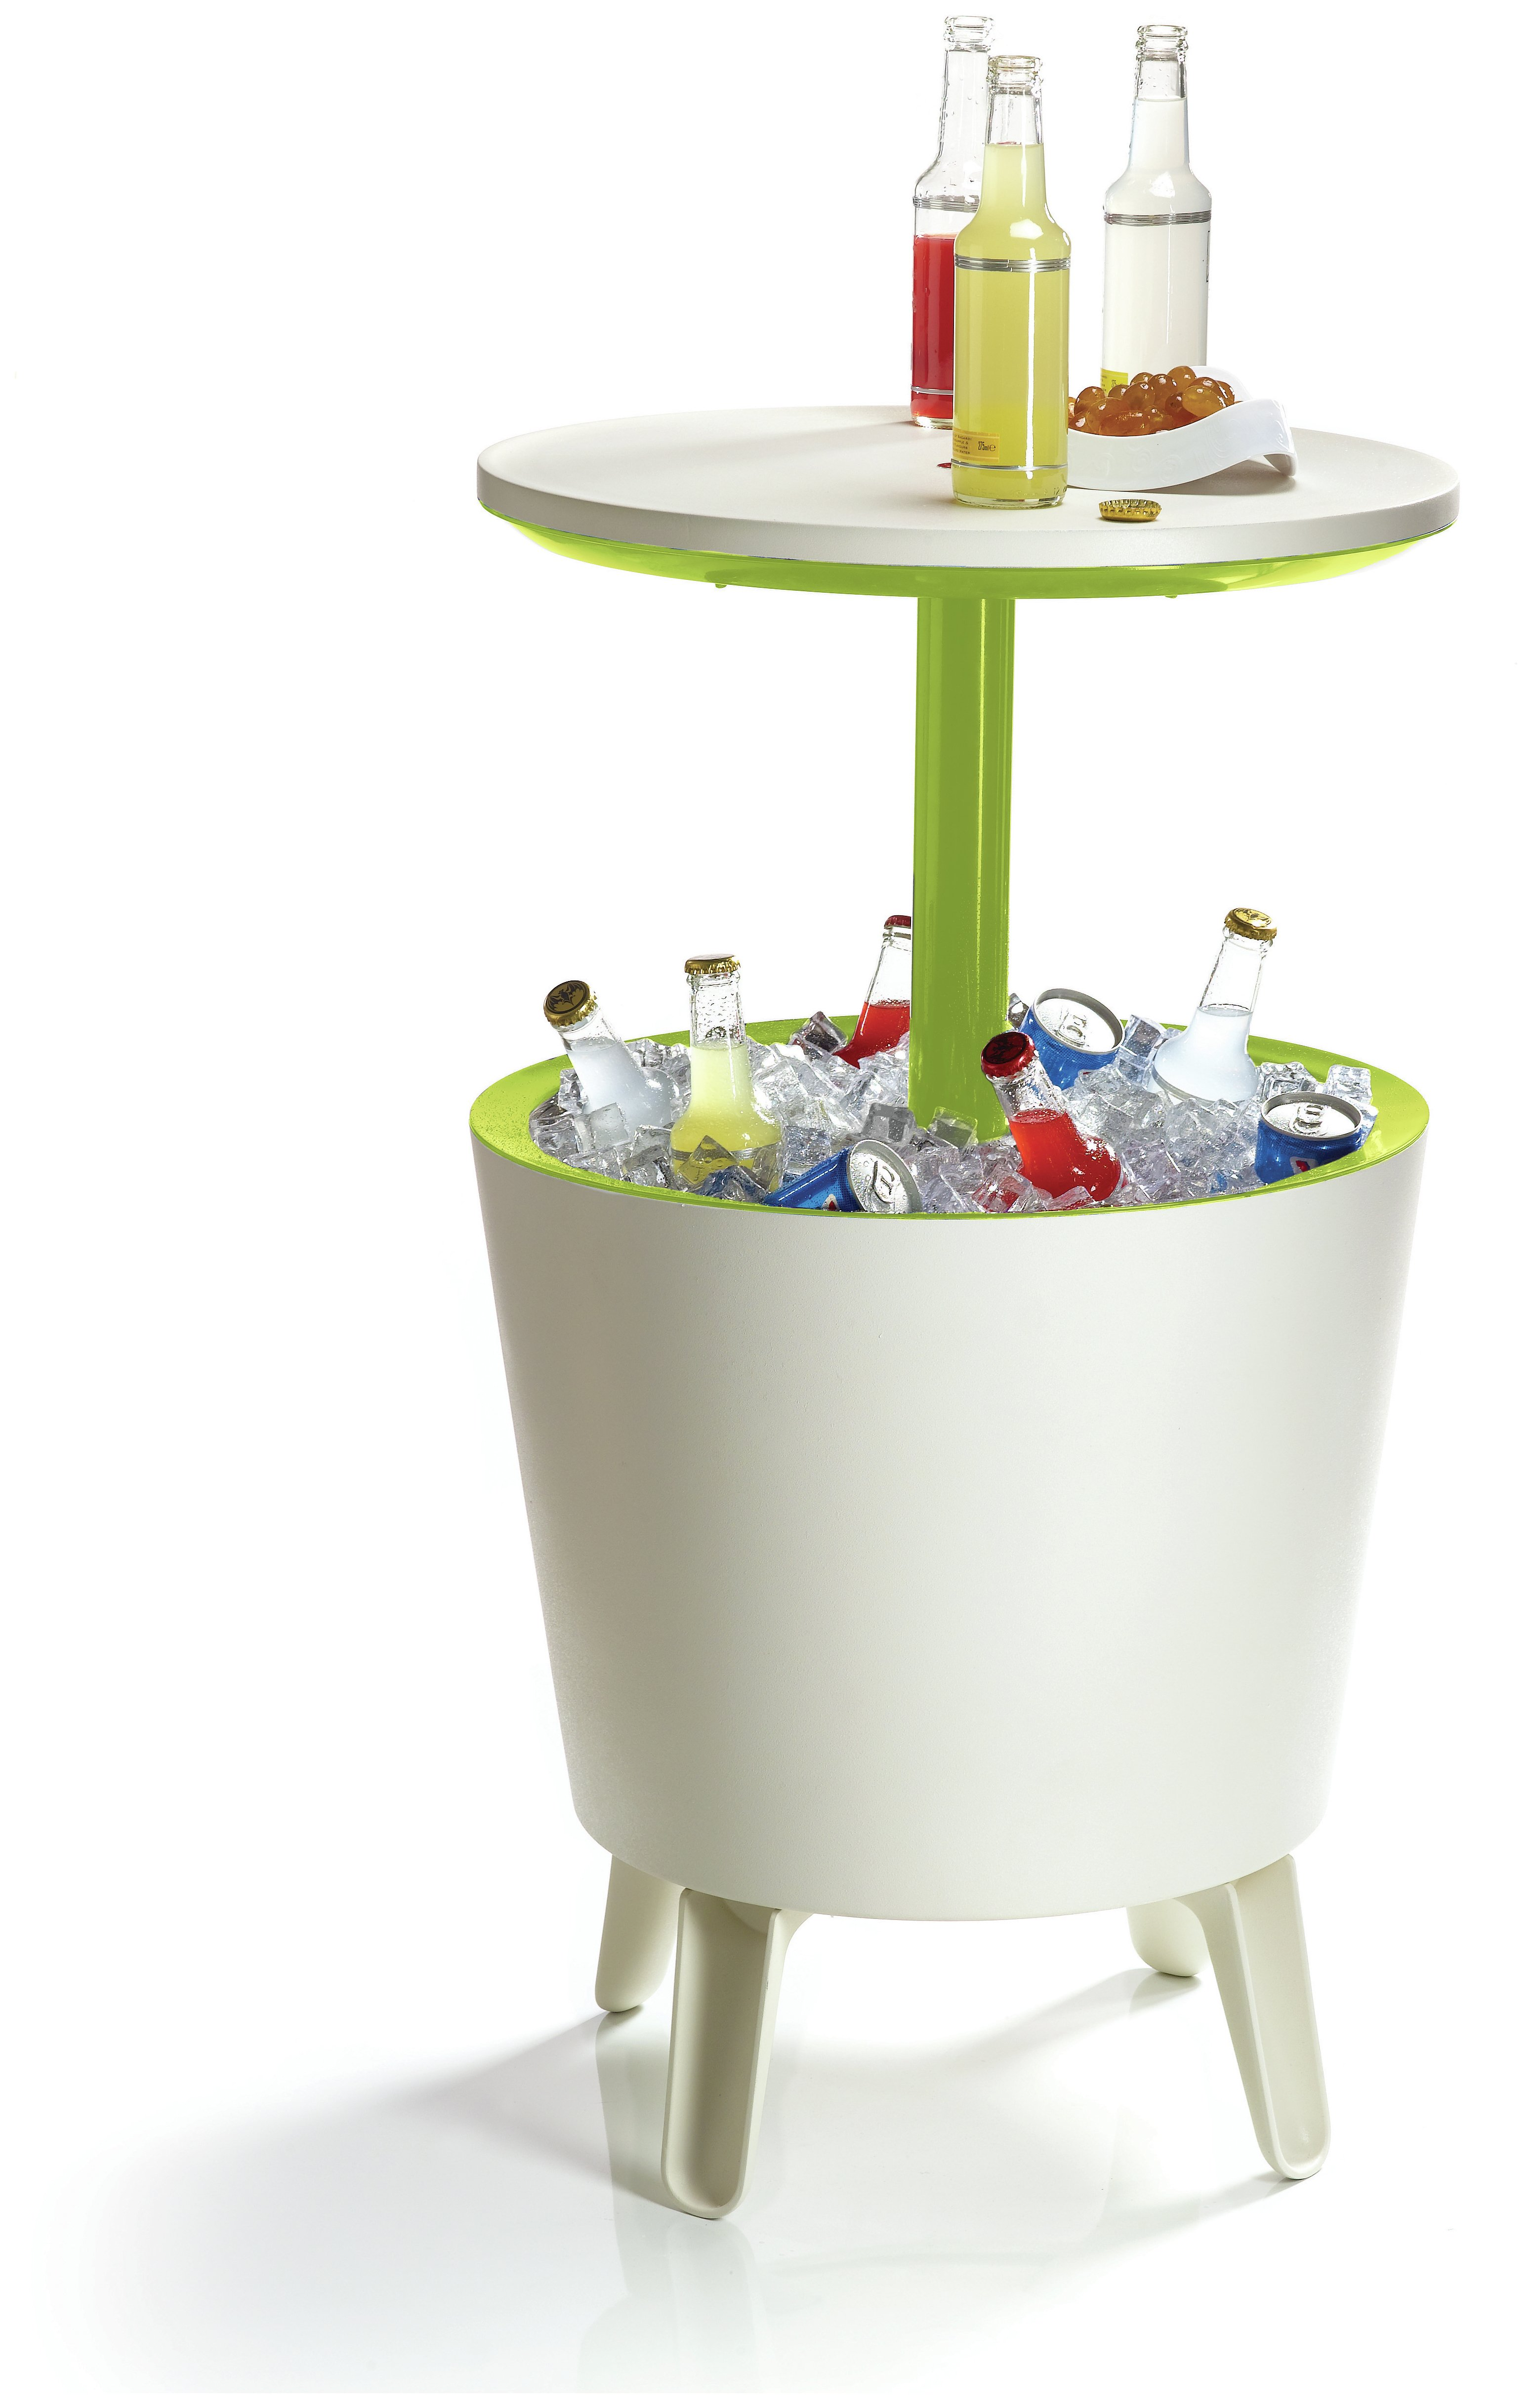 Keter 30 Litre Cool Bar Table : 4578057RZ001A from cheapas.co.uk size 3101 x 4875 jpeg 712kB